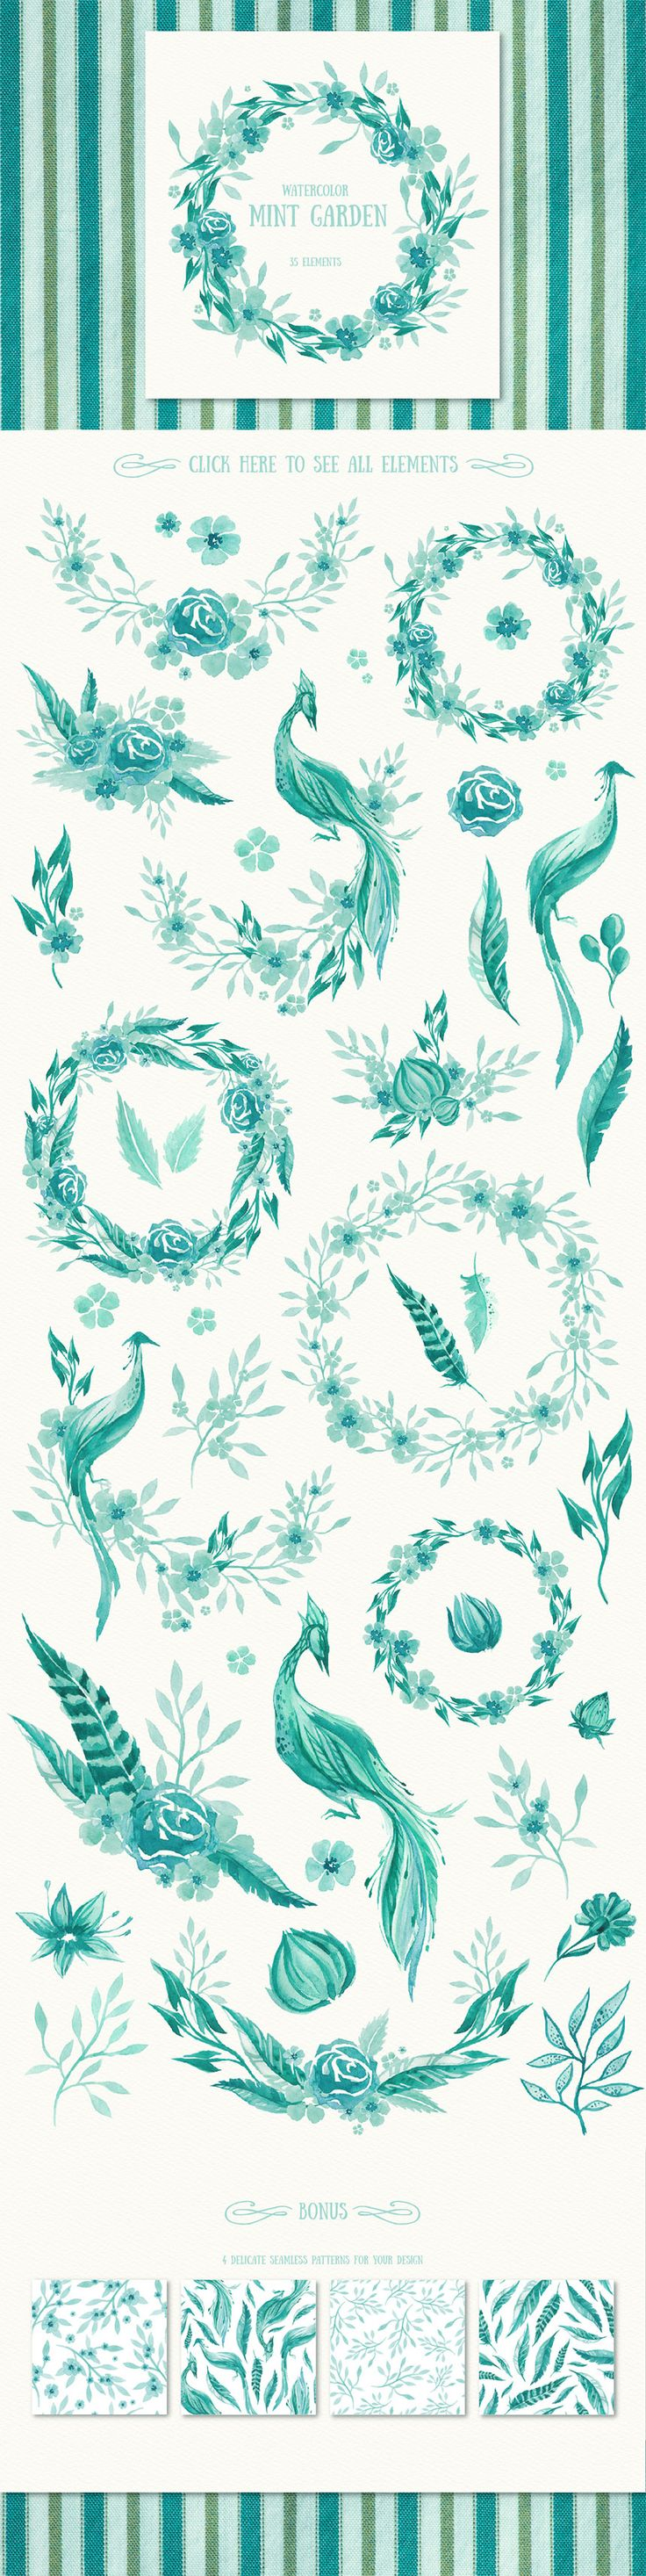 Gorgeous in Teal Graphic Illustrations for DIY Wedding Invitations - great for a rustic themed wedding {affiliate}